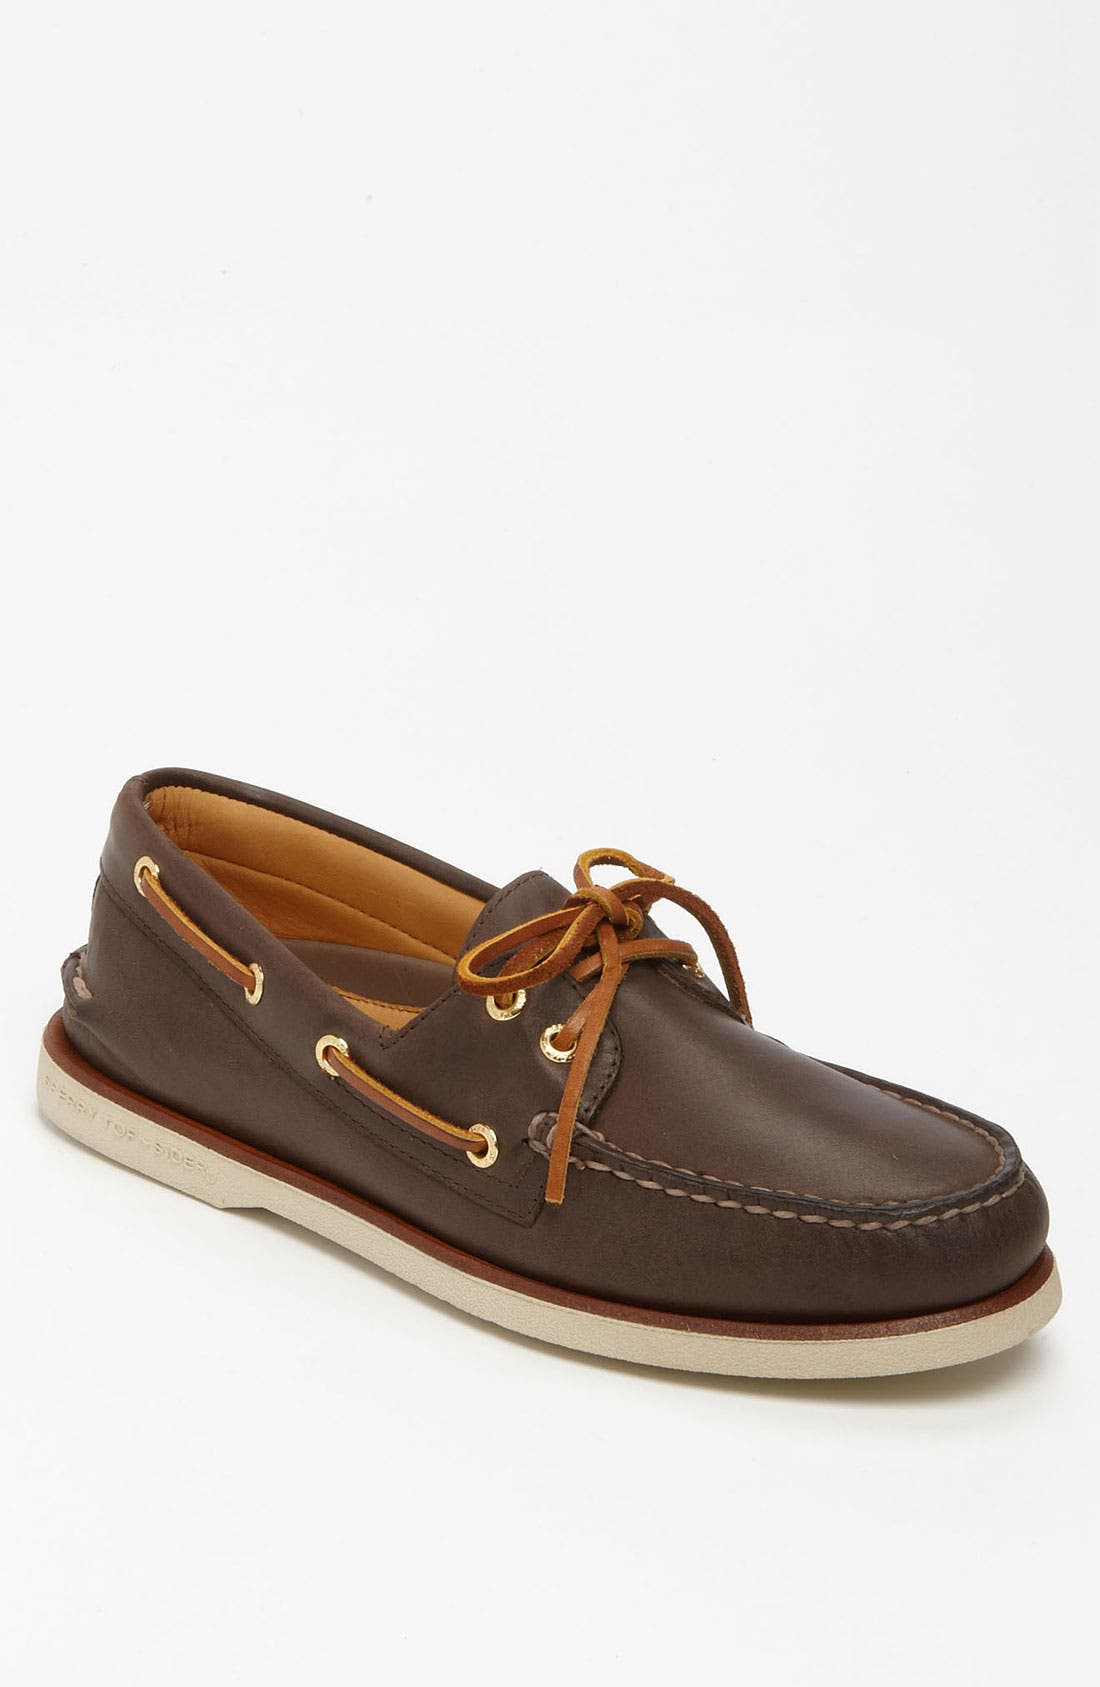 Main Image - Sperry 'Gold Cup - Authentic Original' Boat Shoe (Men)